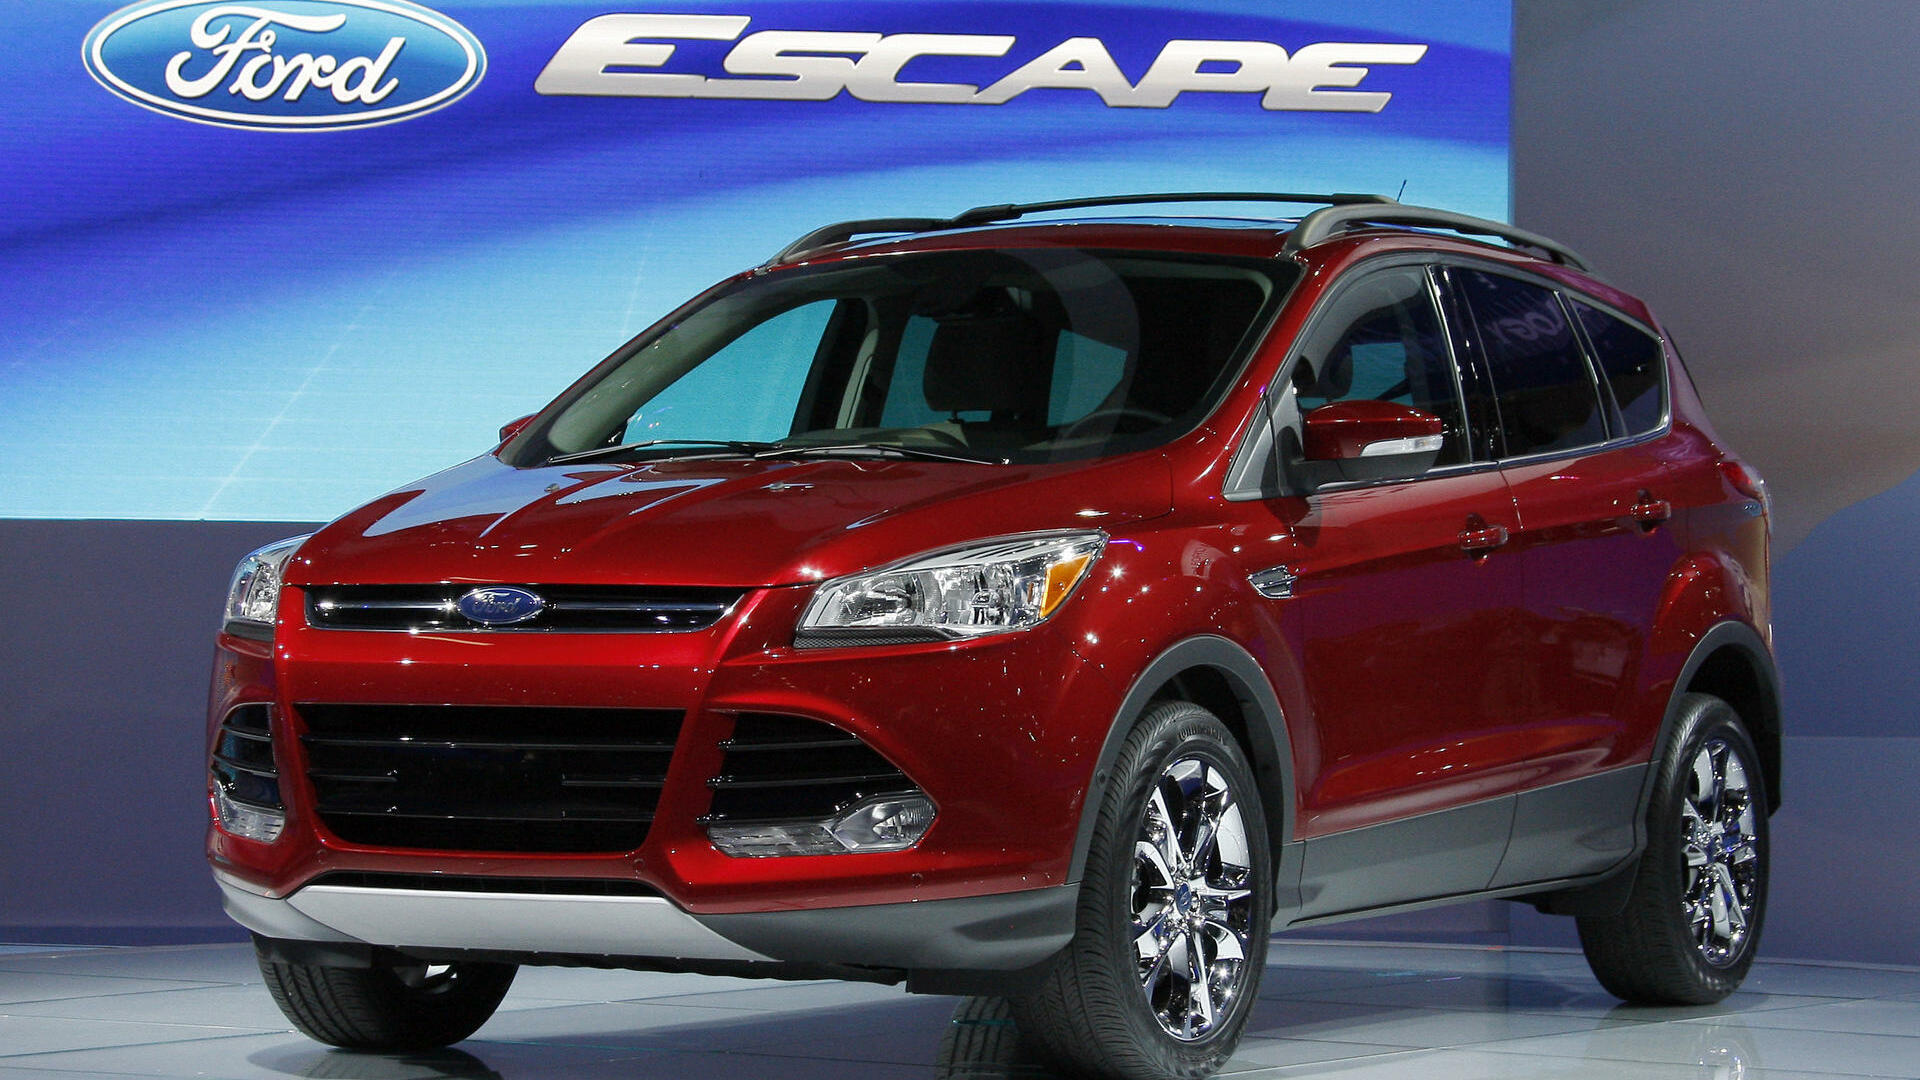 The 2012 Ford Escape Quelle: dapd